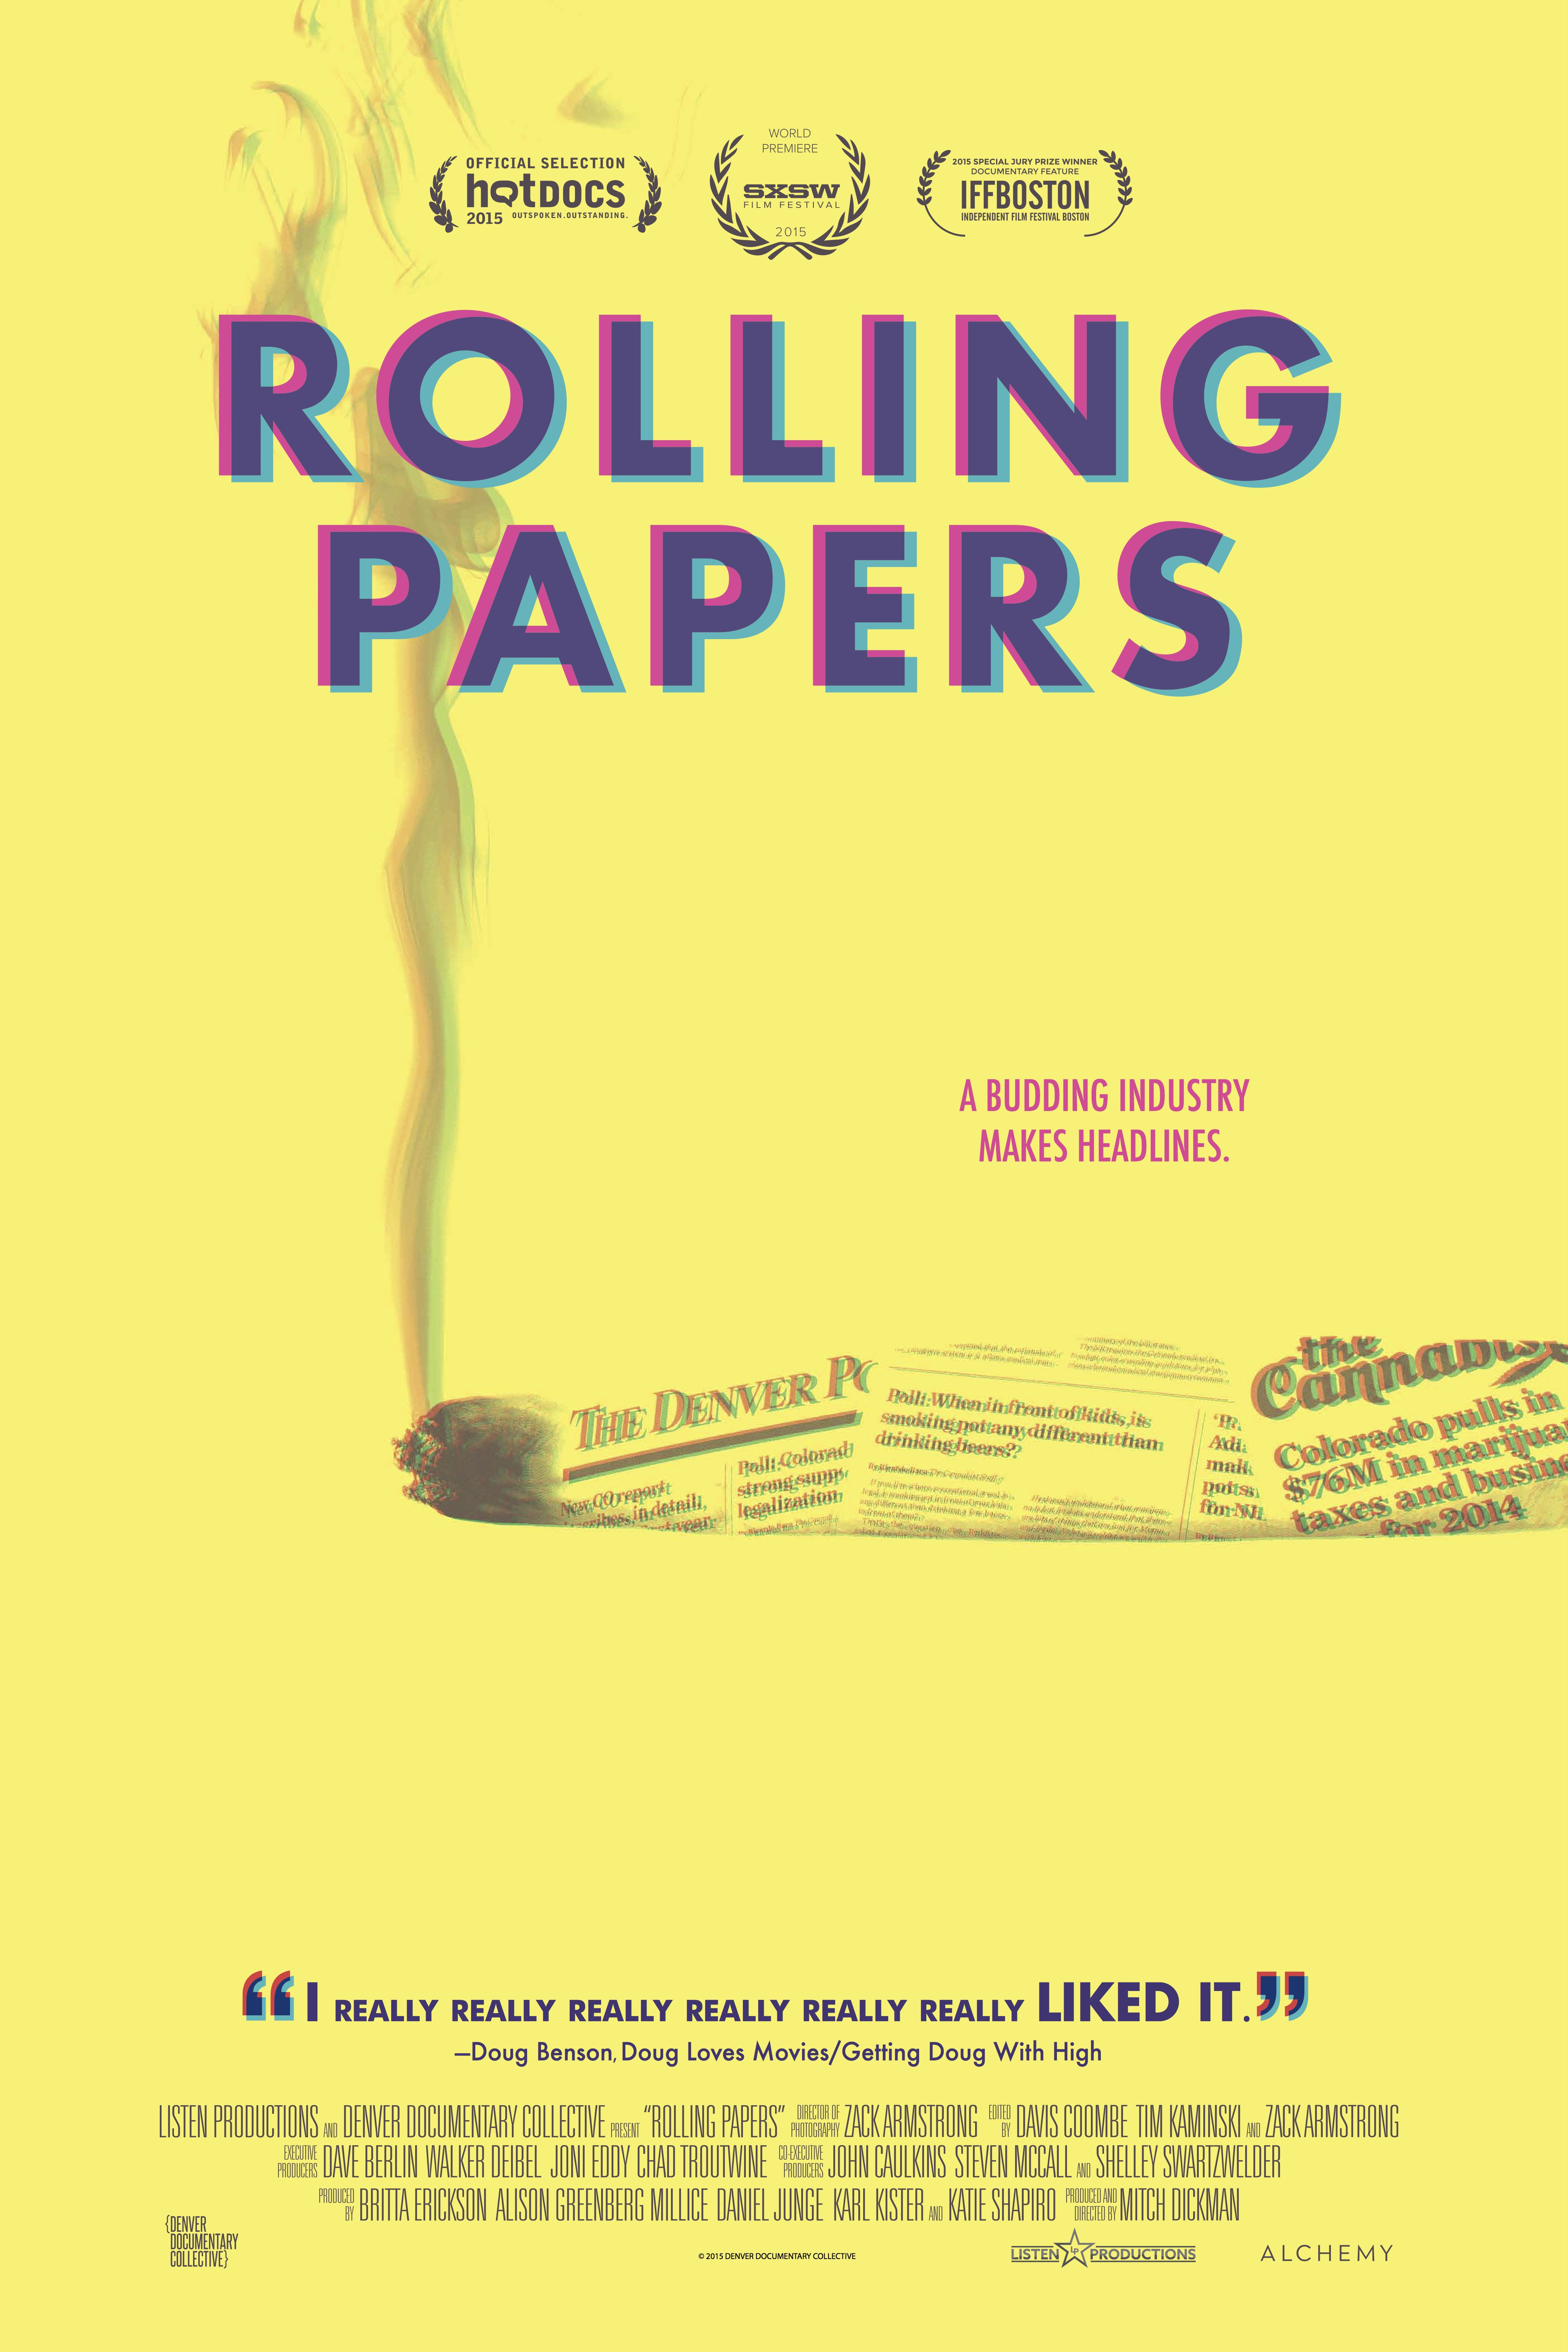 Pot Journalism  See how it rolls with ROLLING PAPERS  Check out the